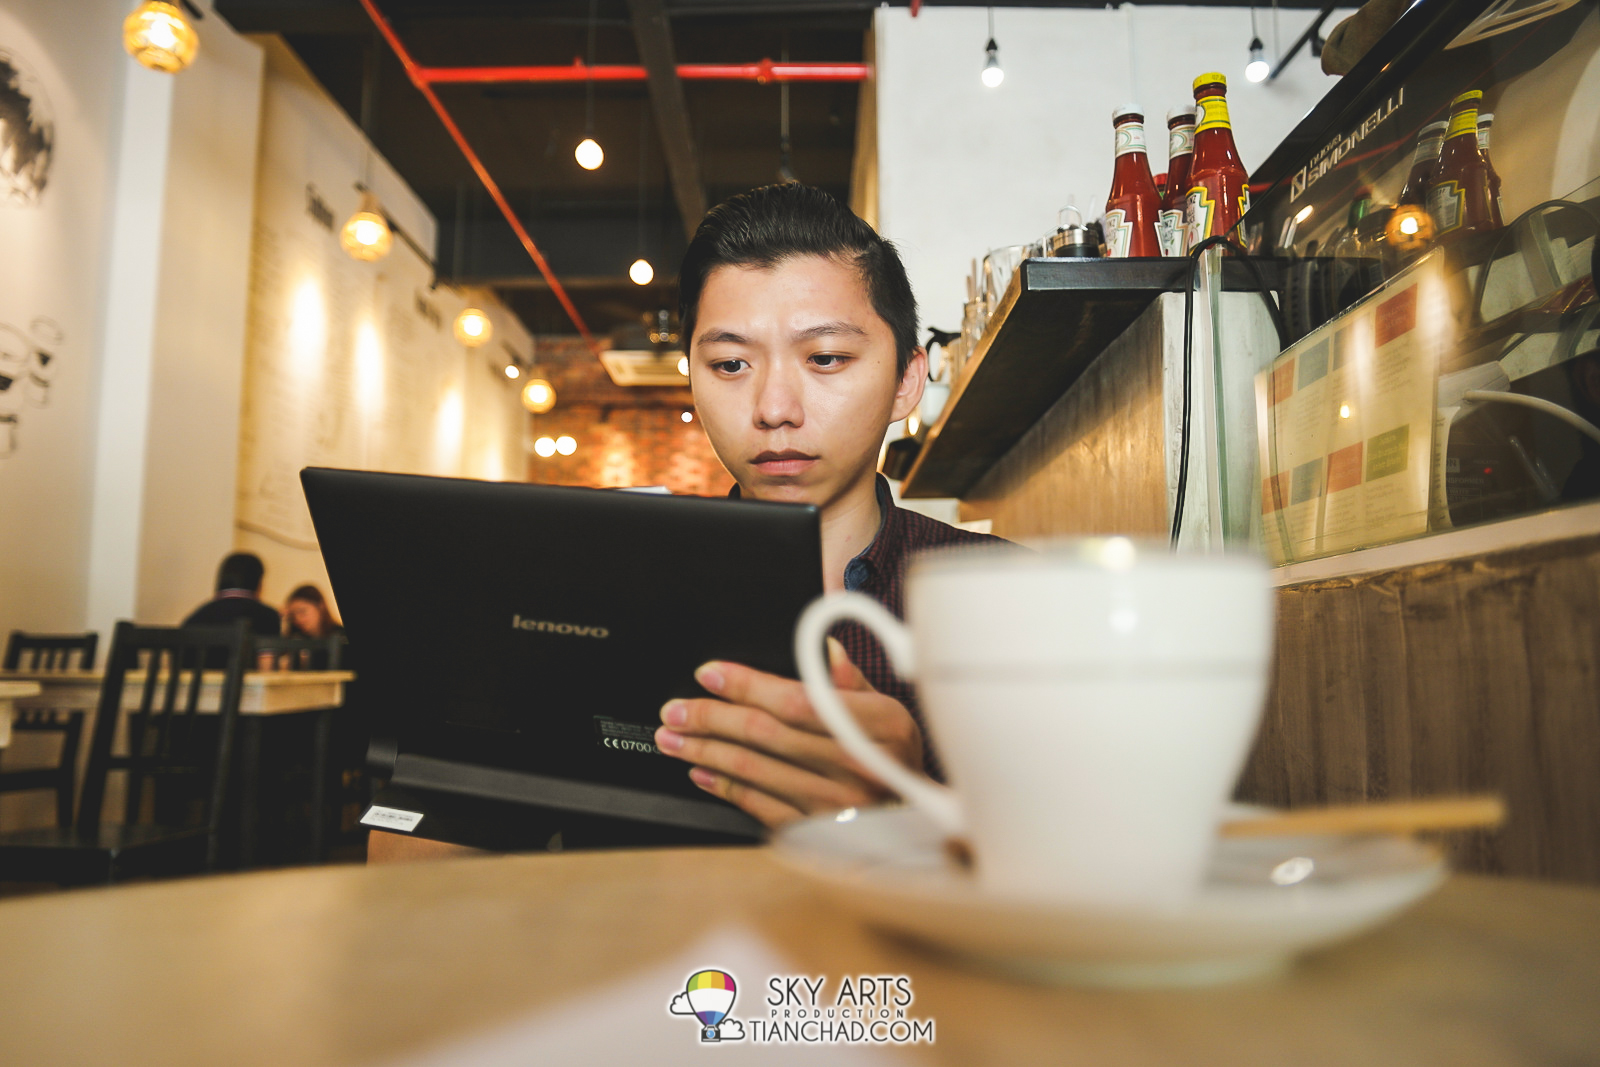 Coffee session with Lenovo Yoga Tablet 2 with Windows